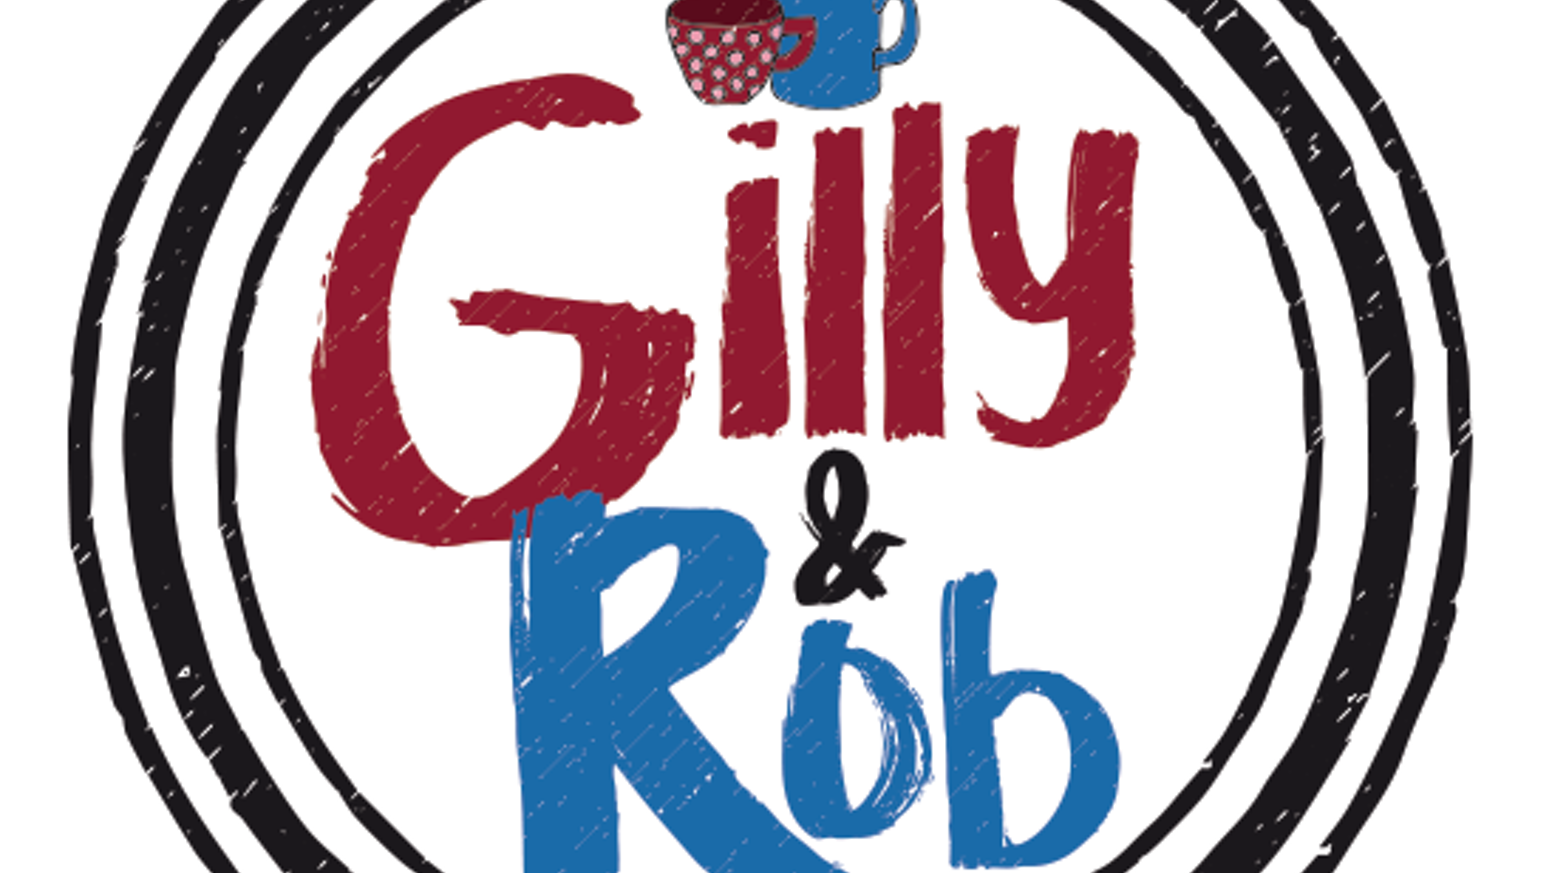 Gilly Rob Greeting Cards By Gillian Duggan White Kickstarter